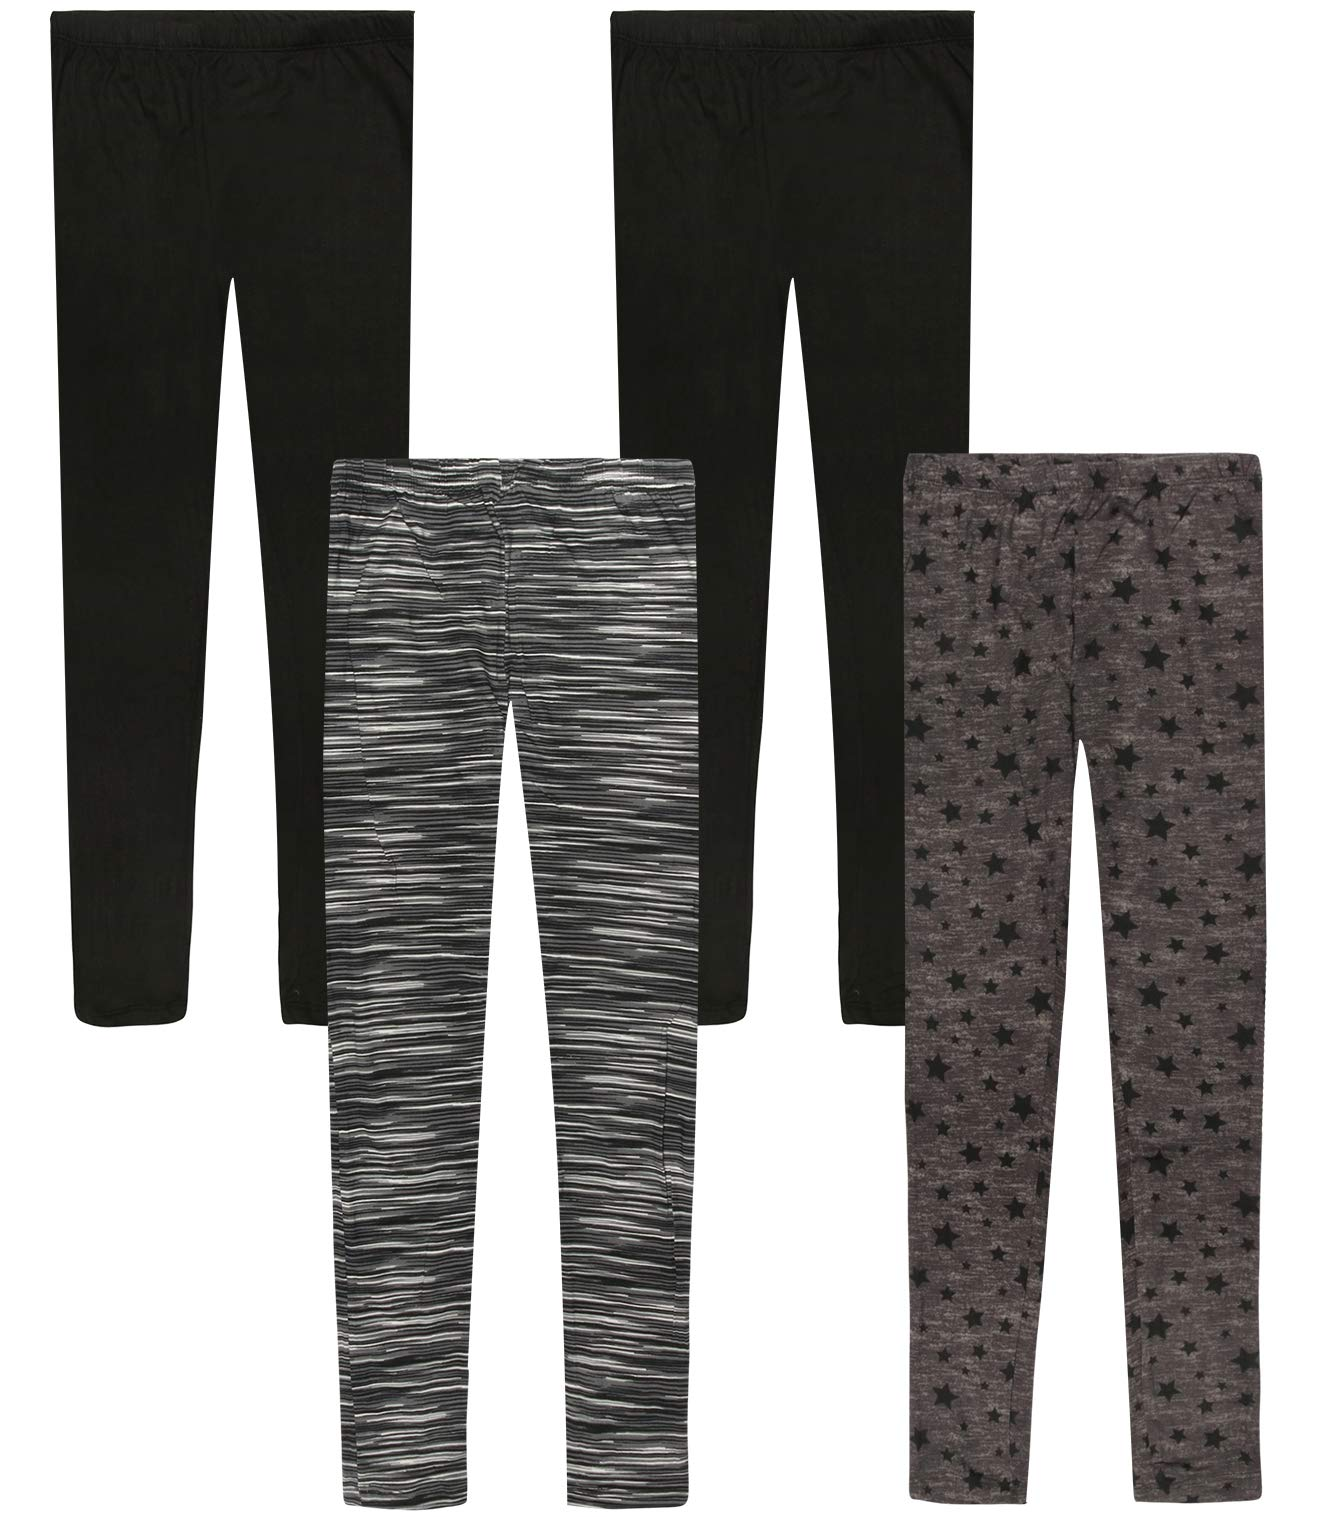 Only Girls Butter-Soft-Touch Printed Yummy Leggings (4-Pack) (Space Dye/Charcoal Stars, 12)'